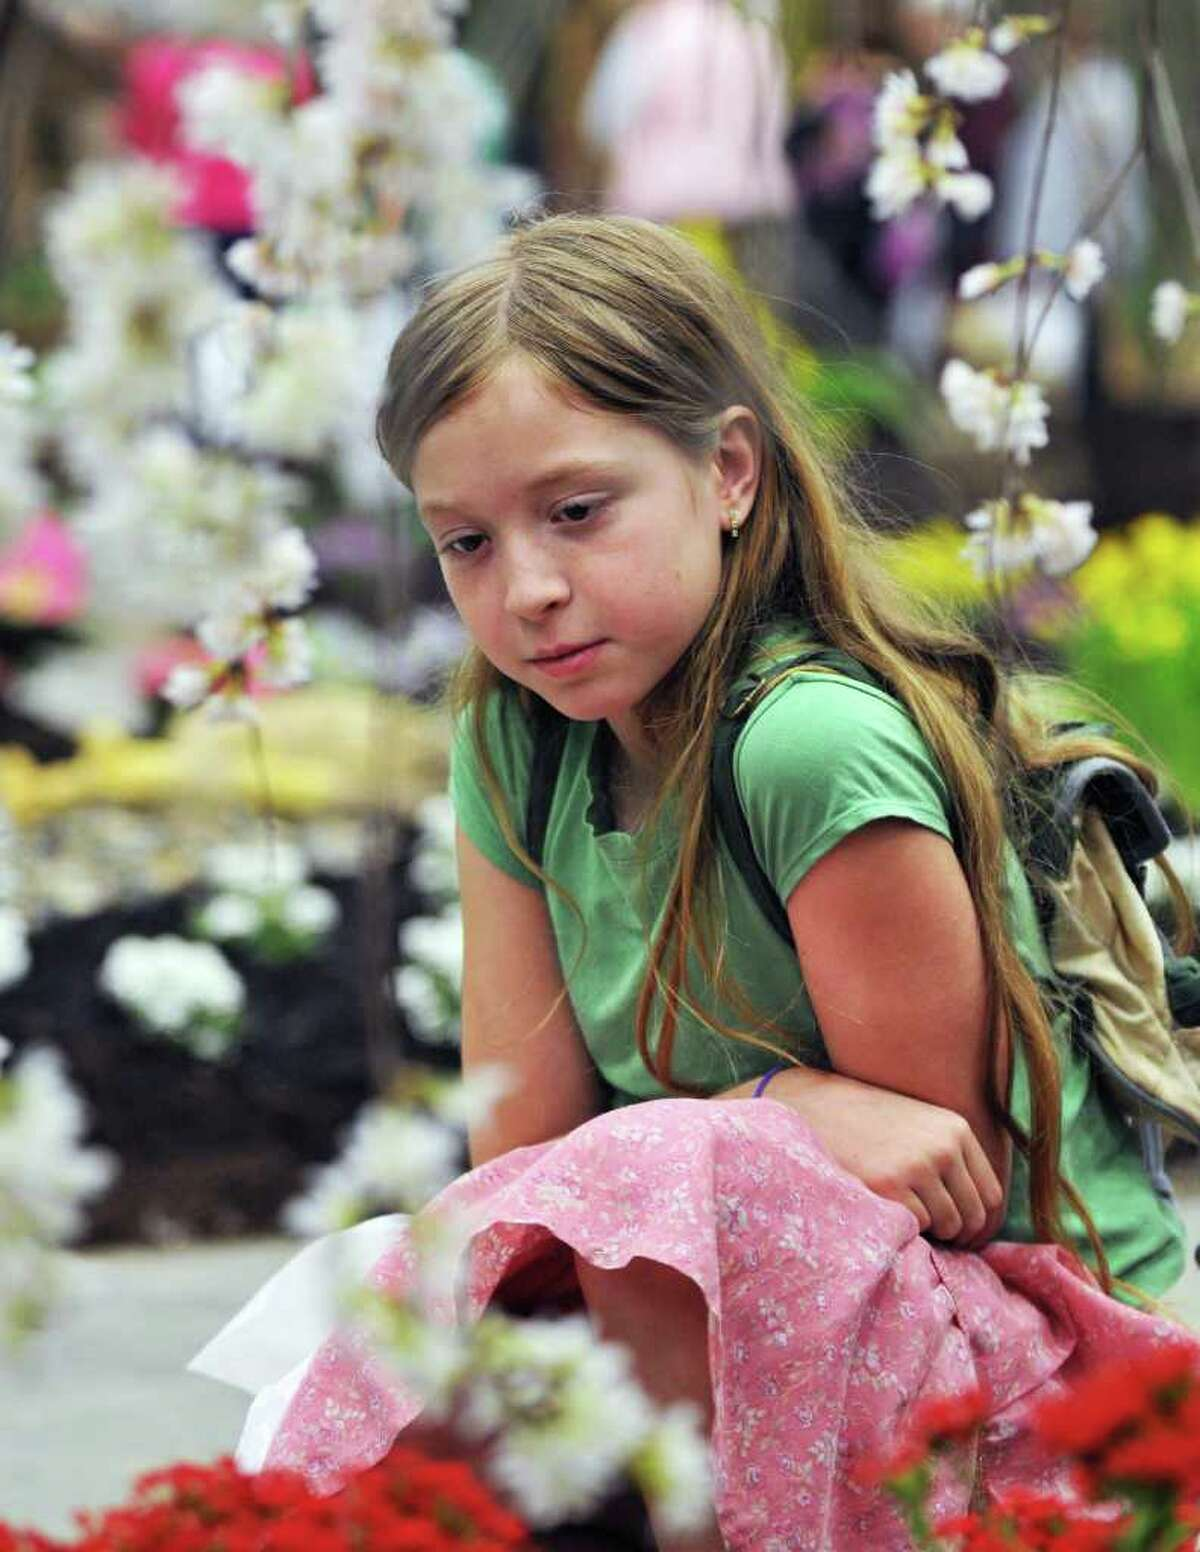 Nine-year-old Flavia Muller of Stephentown studies a display at the 25th Capital District Garden and Flower Show at Hudson Valley Community College in Troy on Friday, March 23, 2012. (John Carl D'Annibale / Times Union)